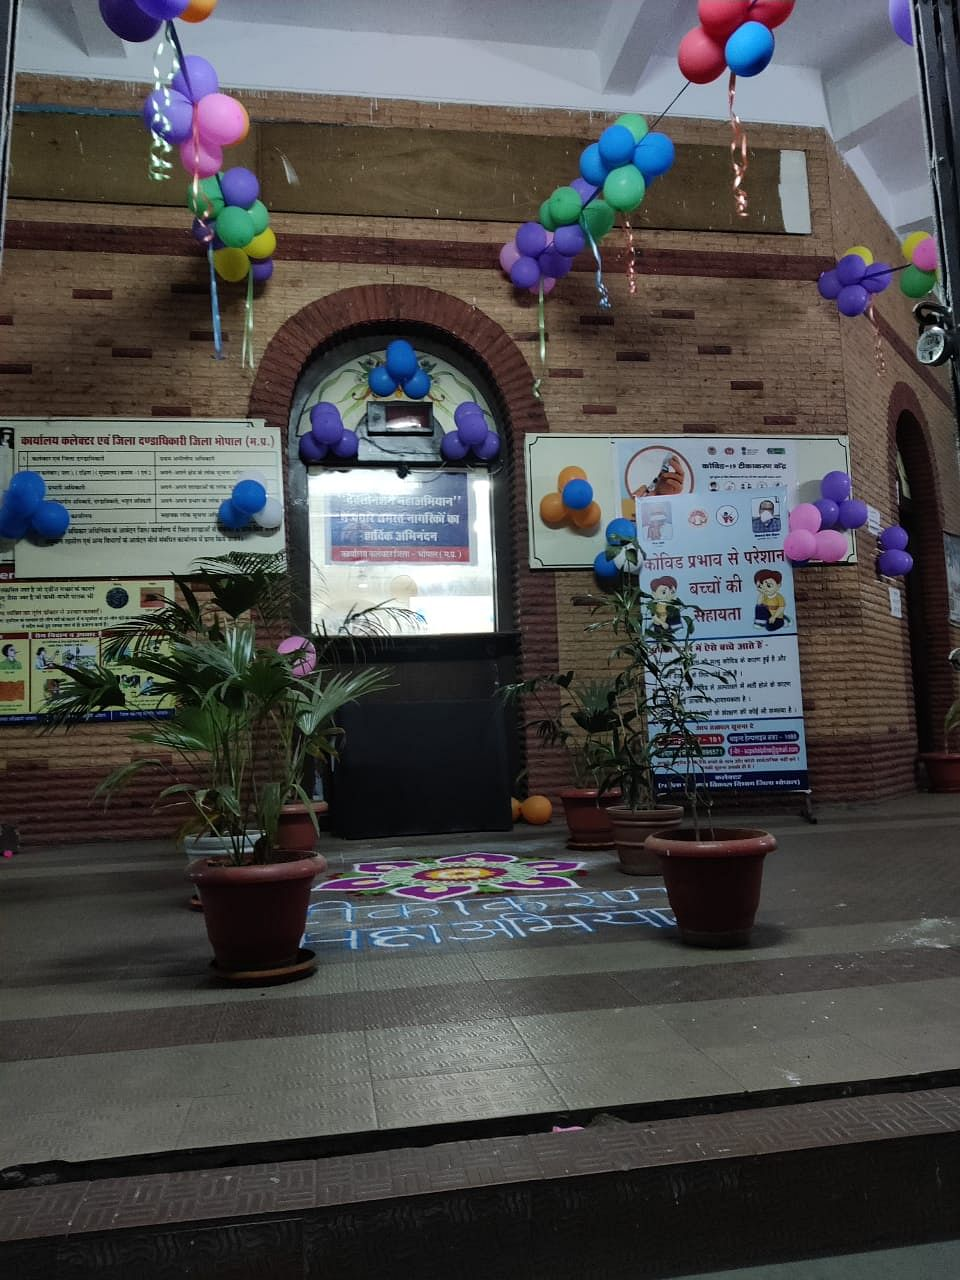 A decked-up vaccination centre in Bhopal